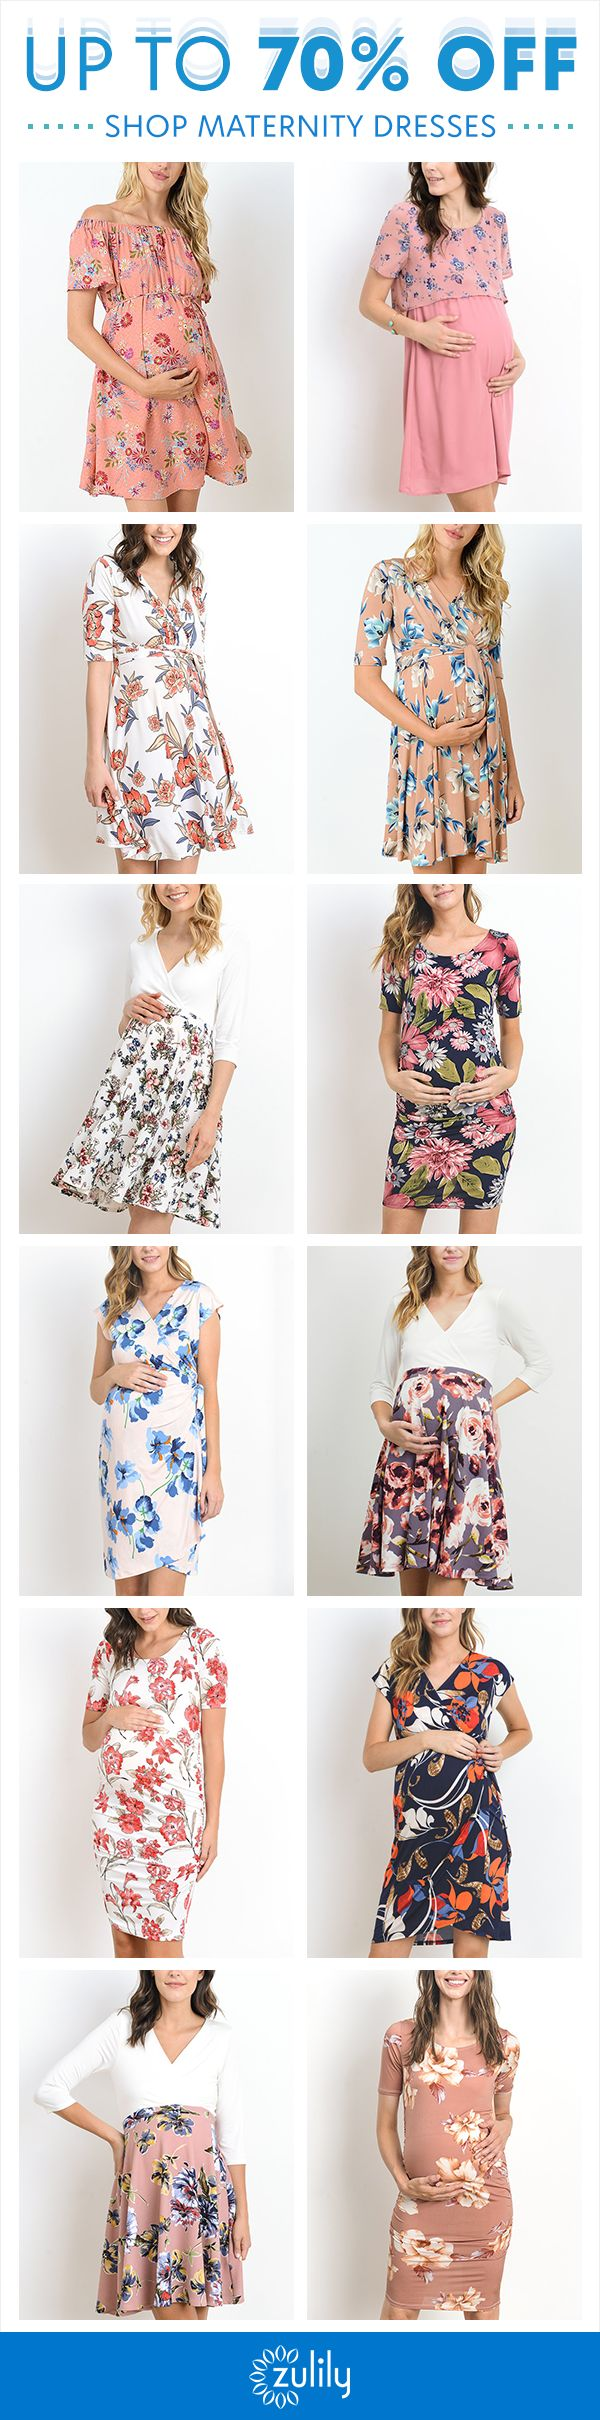 Sign up to shop maternity dresses, up to 70% off. These floral maternity dresses …  – Maternity Style